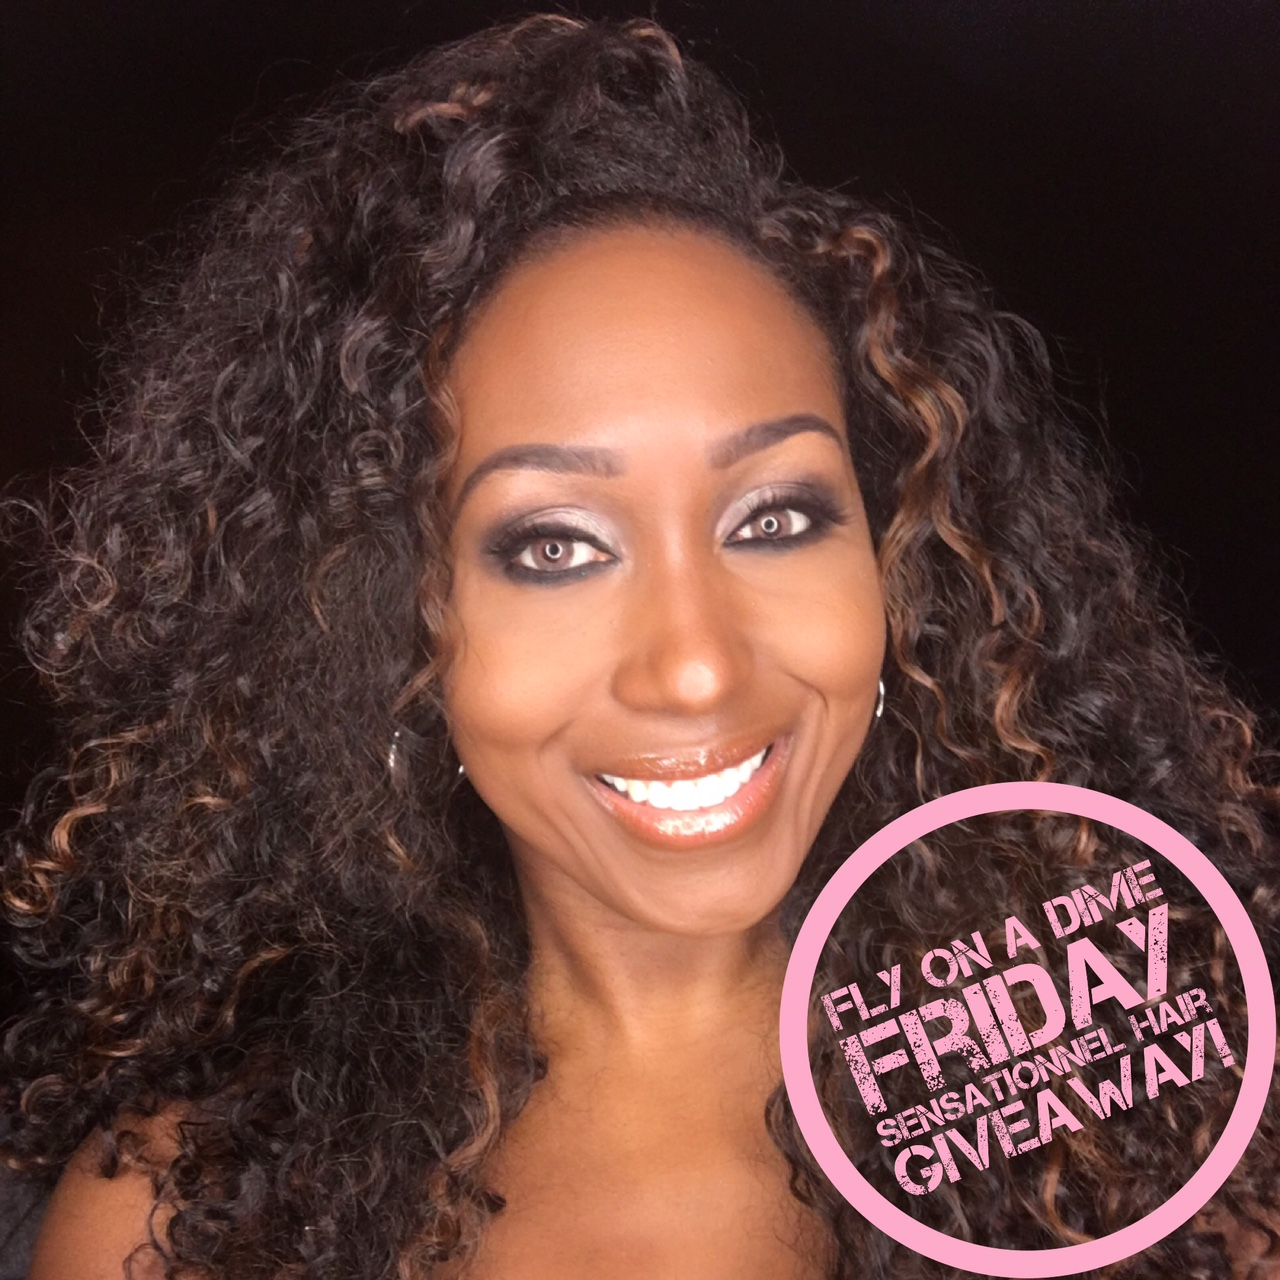 Fly On A Dime Free Hair Sensationnel Hair Giveaway This Friday W